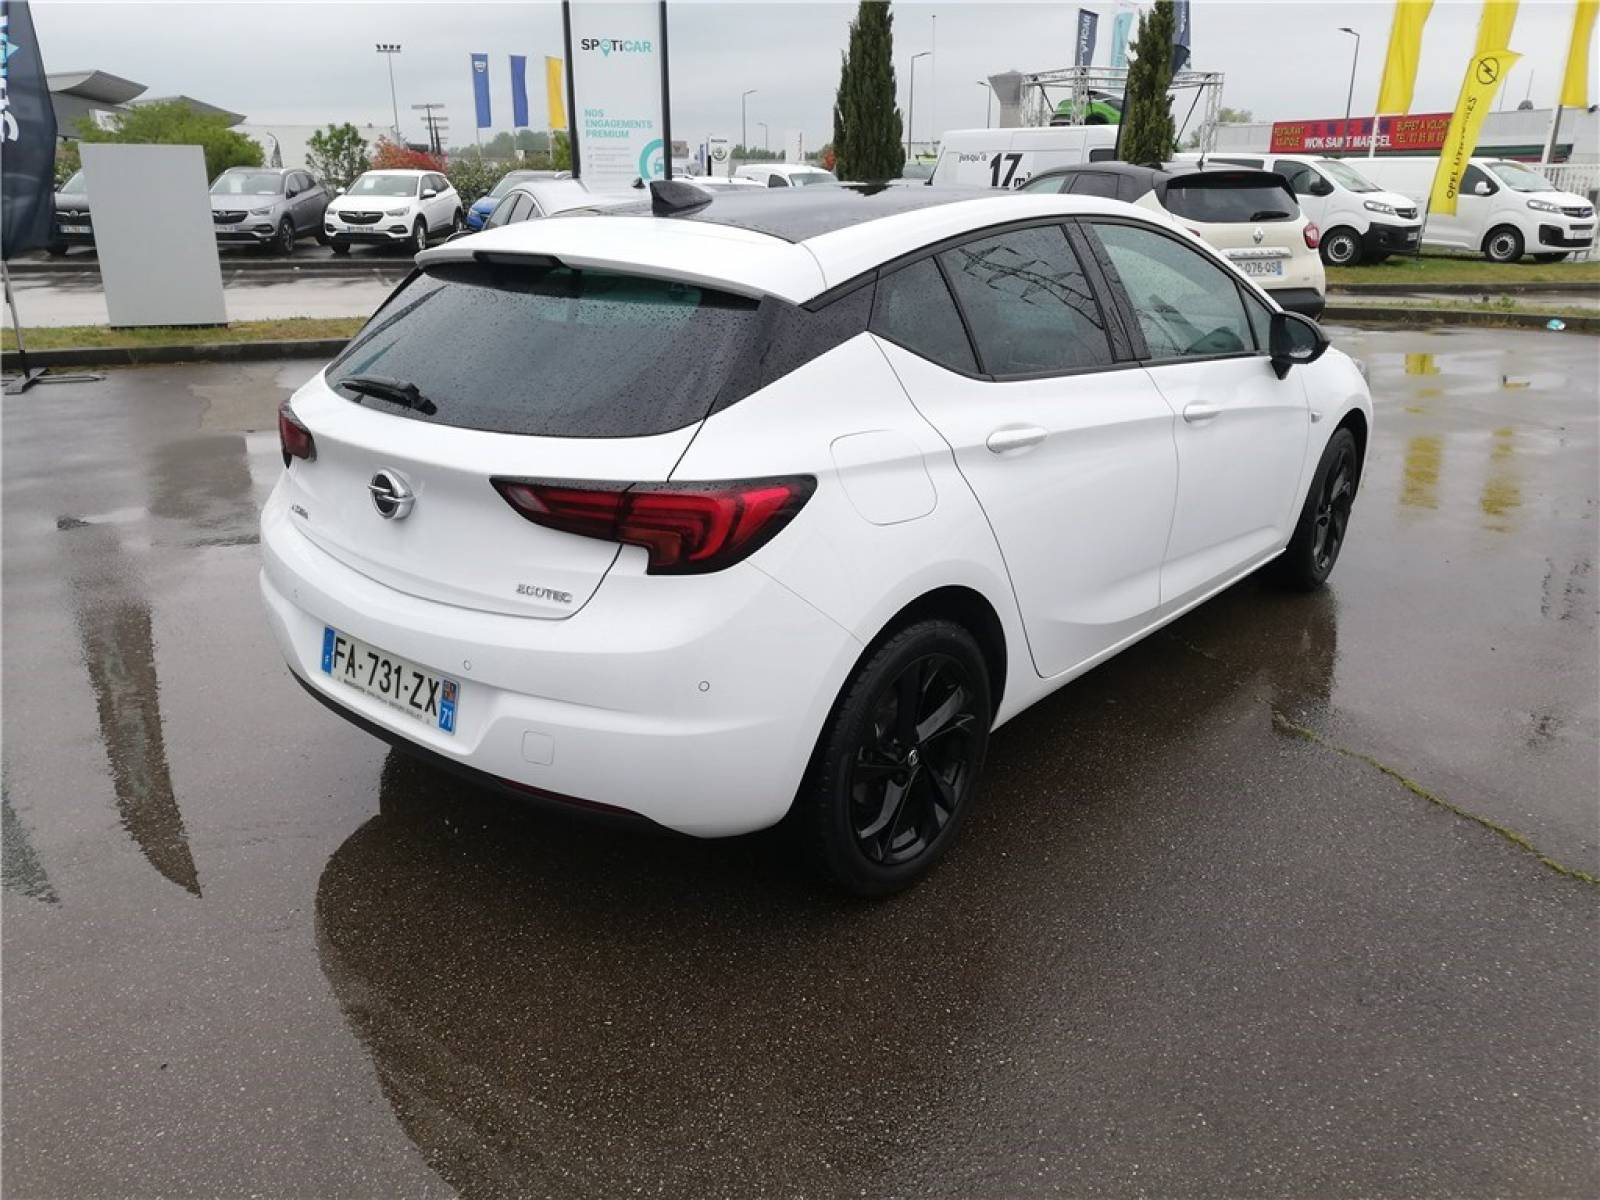 OPEL Astra 1.0 Turbo 105 ch ECOTEC Start/Stop - véhicule d'occasion - Groupe Guillet - Opel Magicauto - Chalon-sur-Saône - 71380 - Saint-Marcel - 5